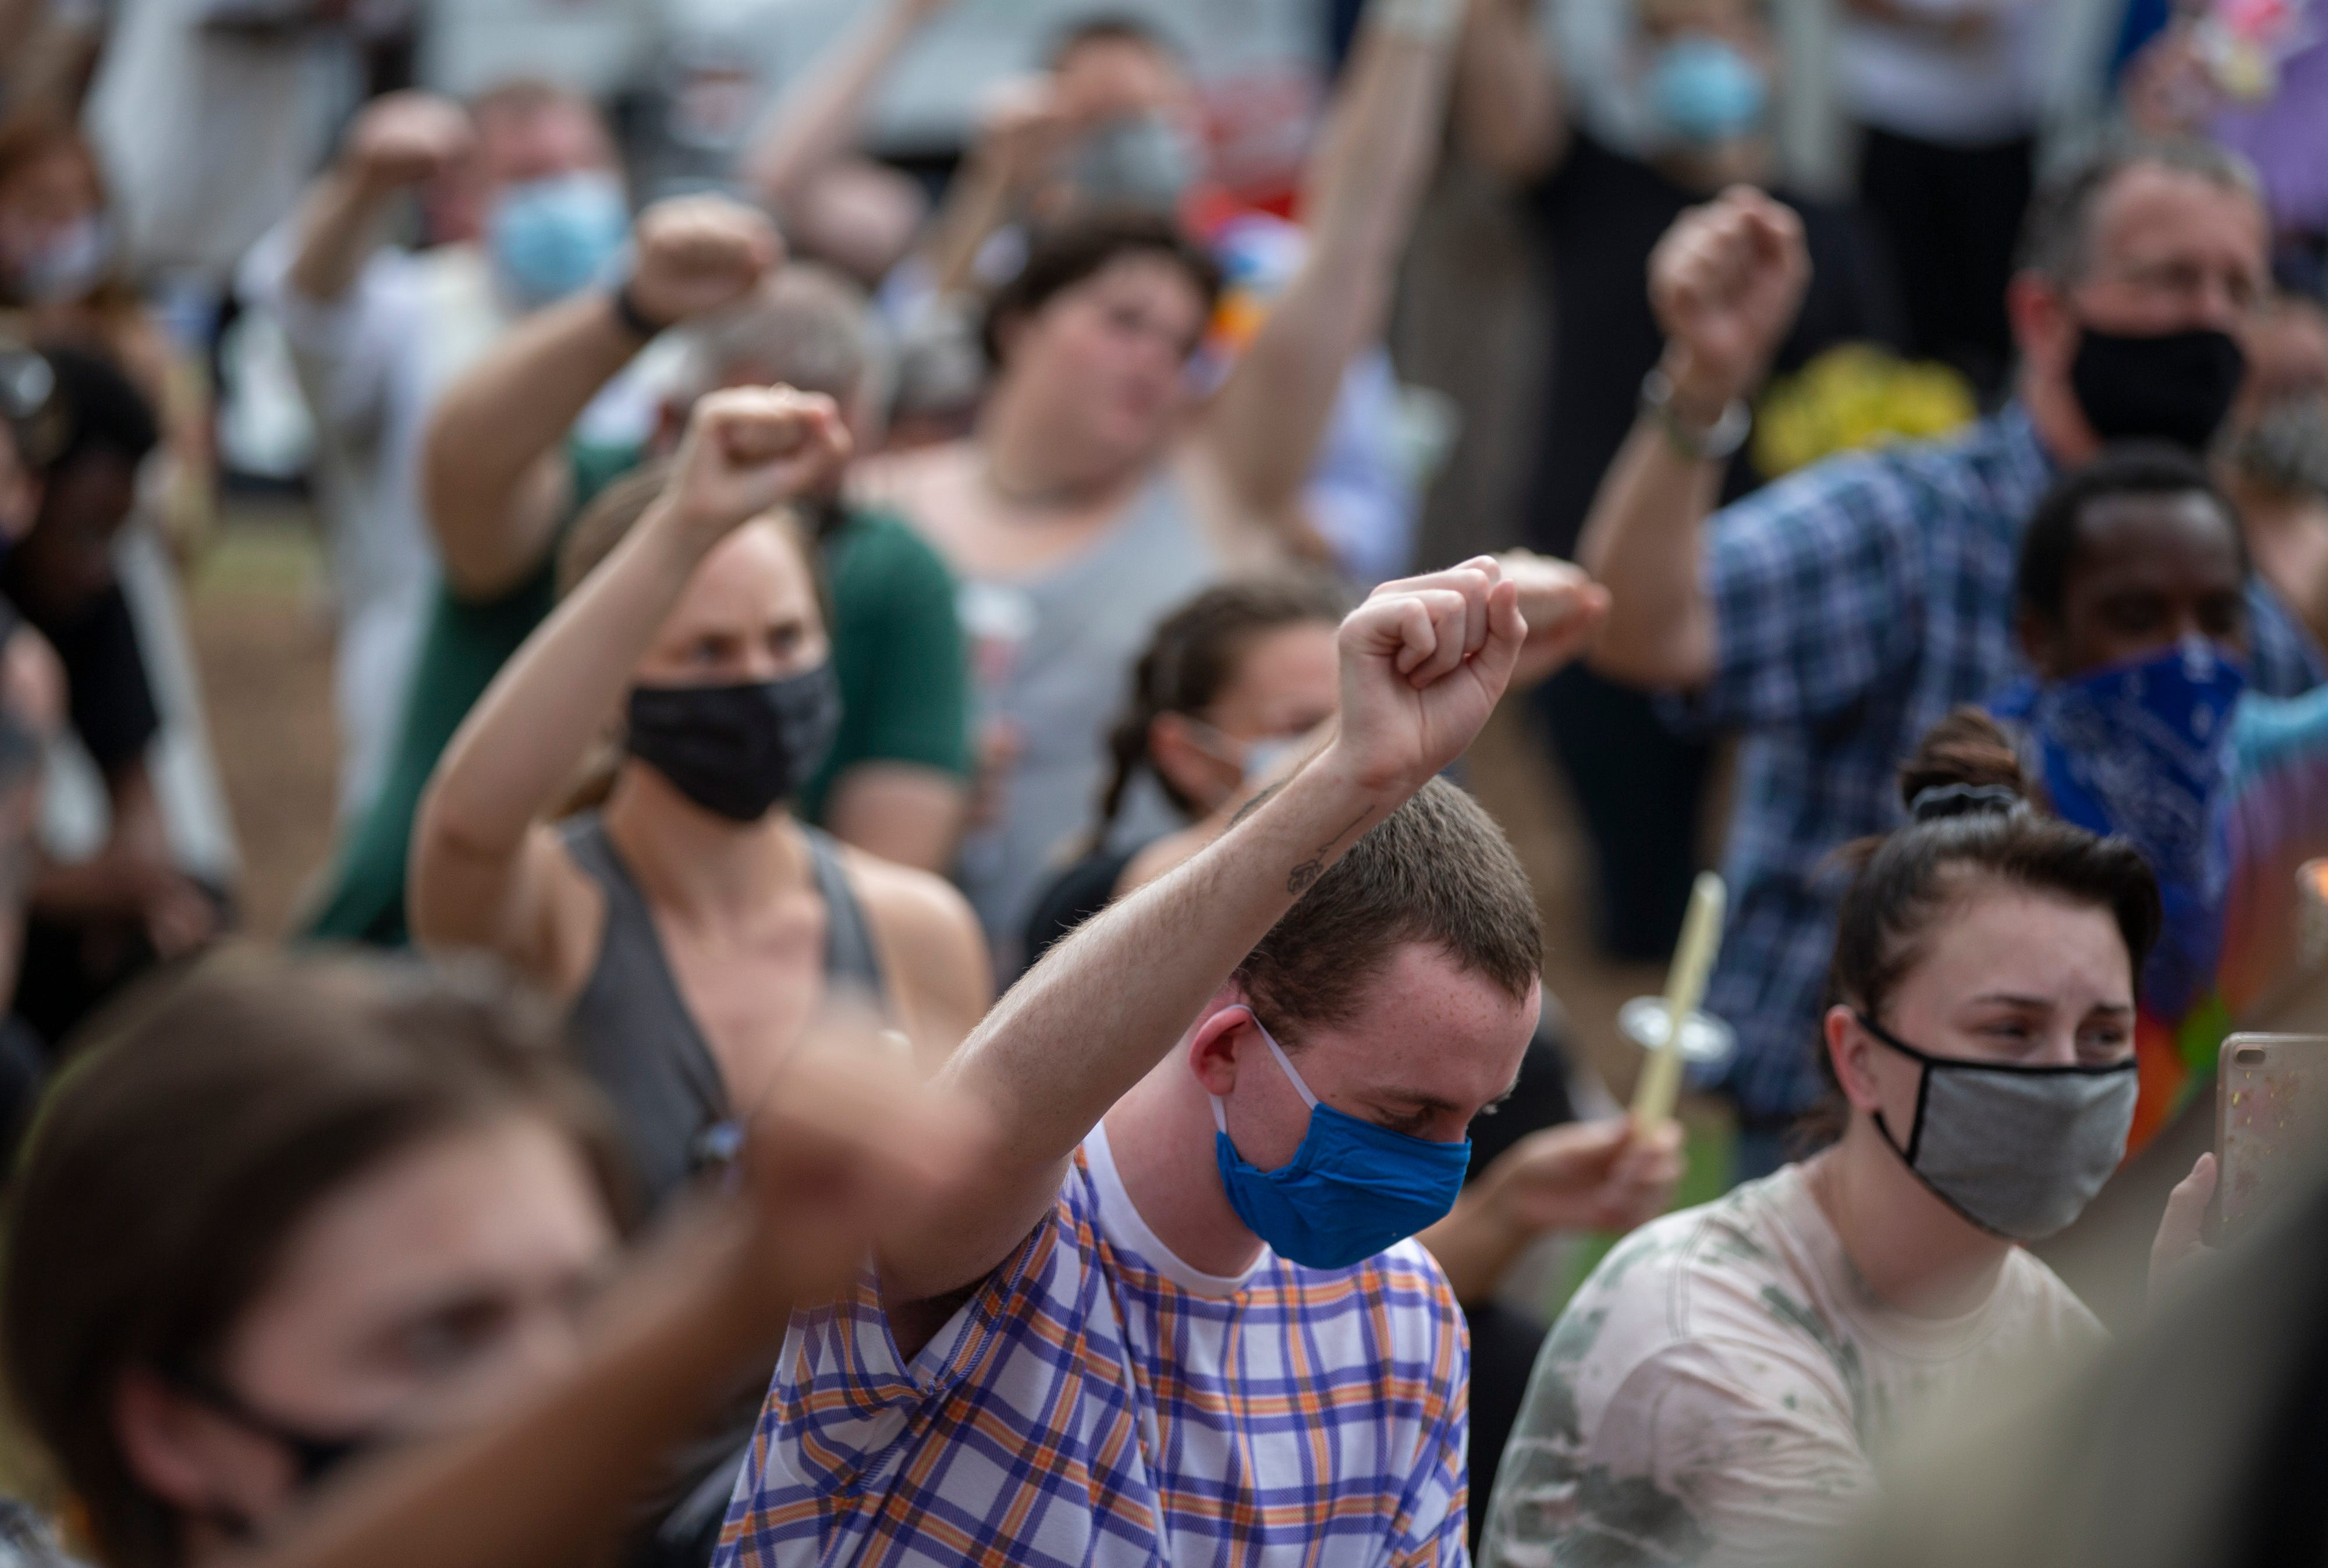 Mourners raise their fists in the air during a vigil for Tyler Gerth on June 28, 2020, a photographer who was shot and killed in Jefferson Square Park in Louisville, Ky.